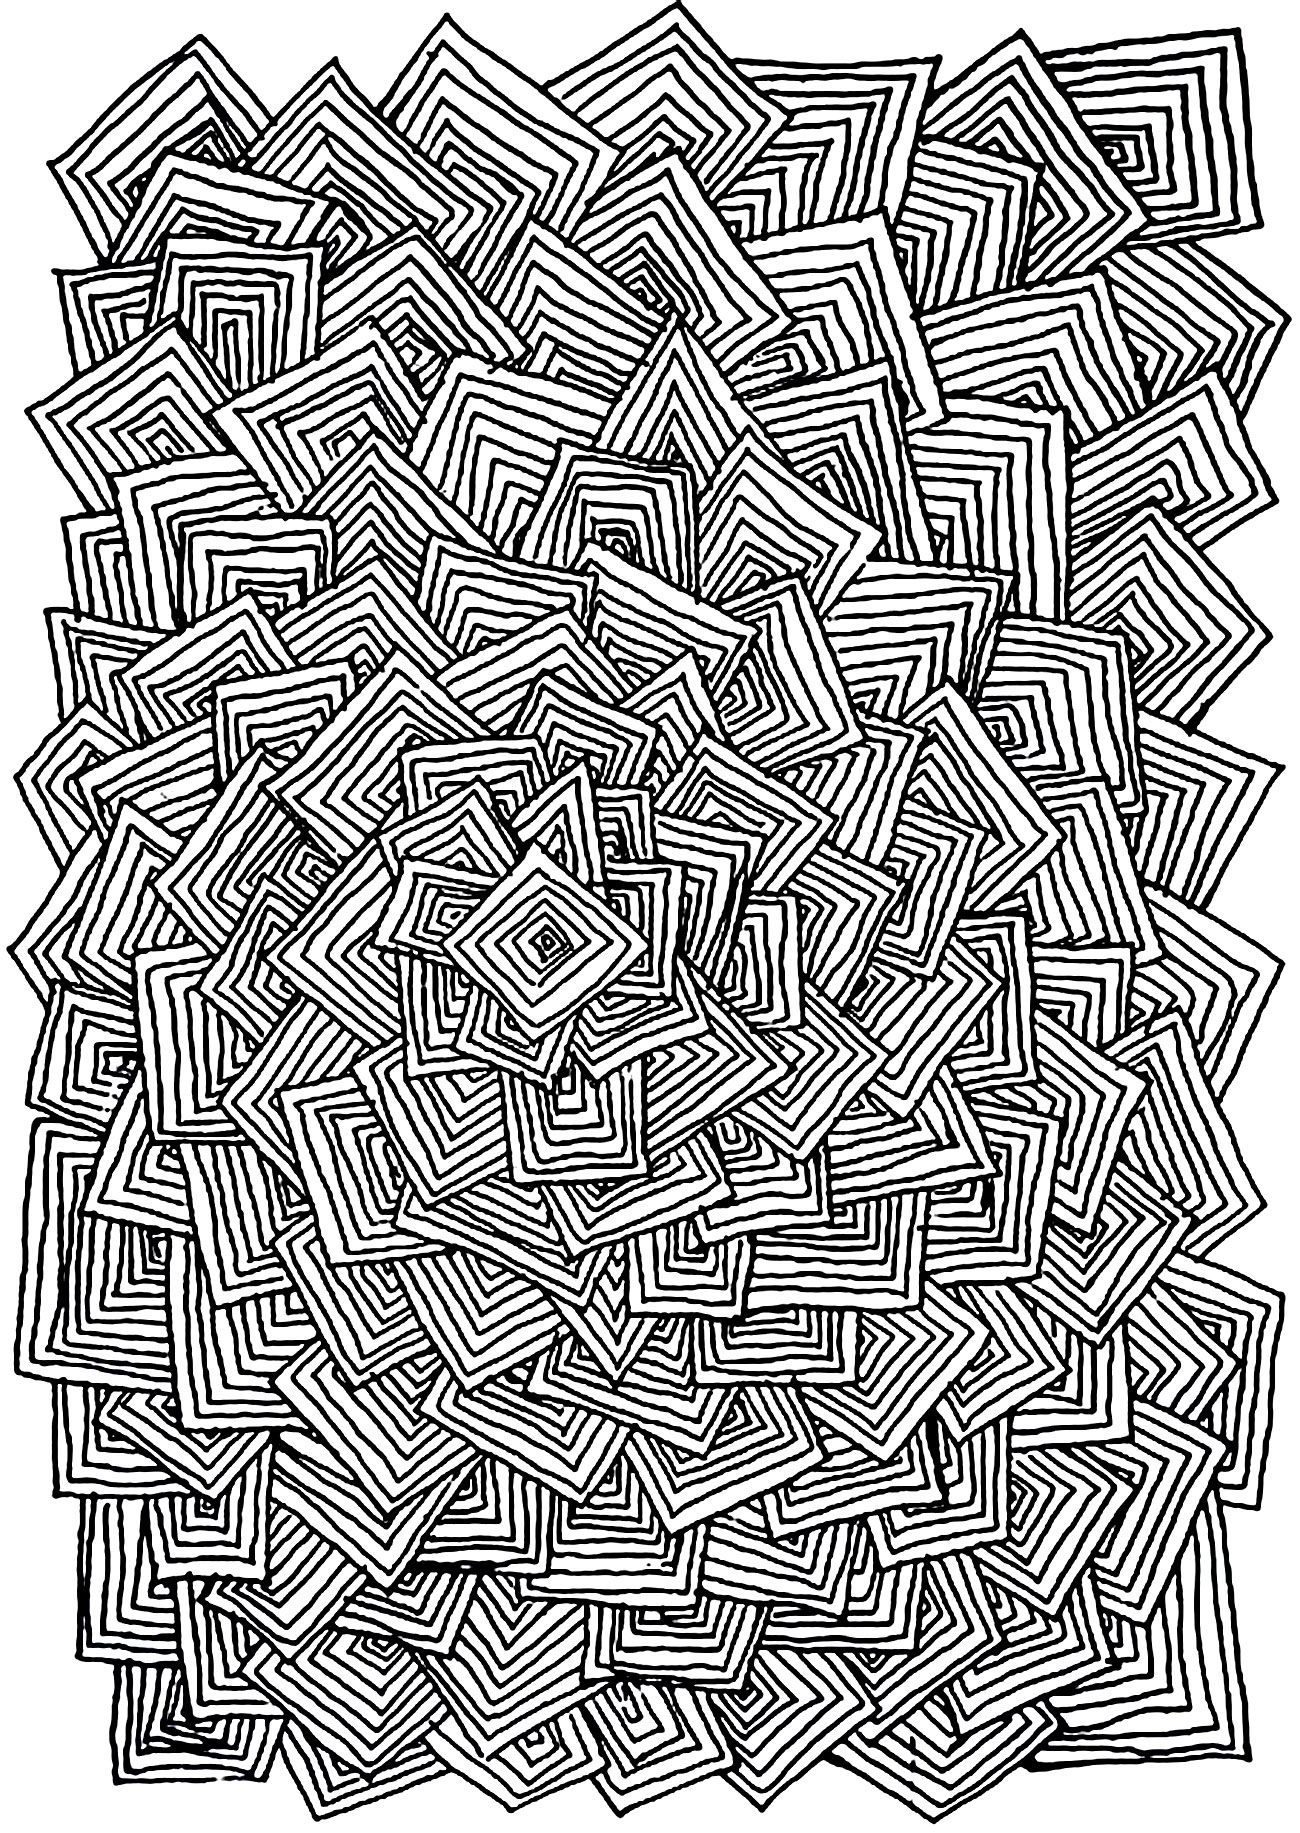 Coloring pages relaxing - Zen Anti Stress Adult Relax Squares Coloring Pages Printable And Coloring Book To Print For Free Find More Coloring Pages Online For Kids And Adults Of Zen